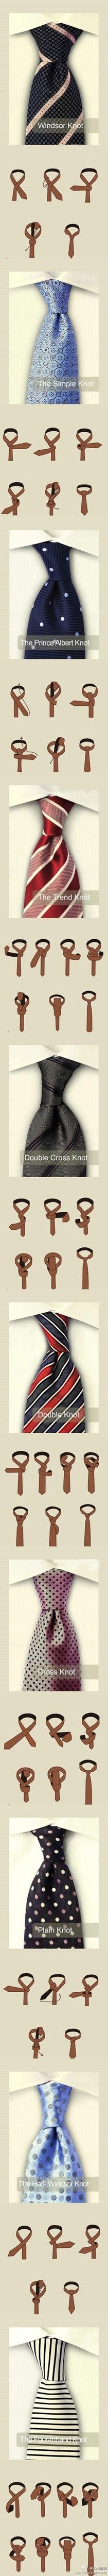 Windsor knot. Classic the knot, oneday, remember this, tying ties, tie a tie, son, neck ties, tying a tie, tie knots